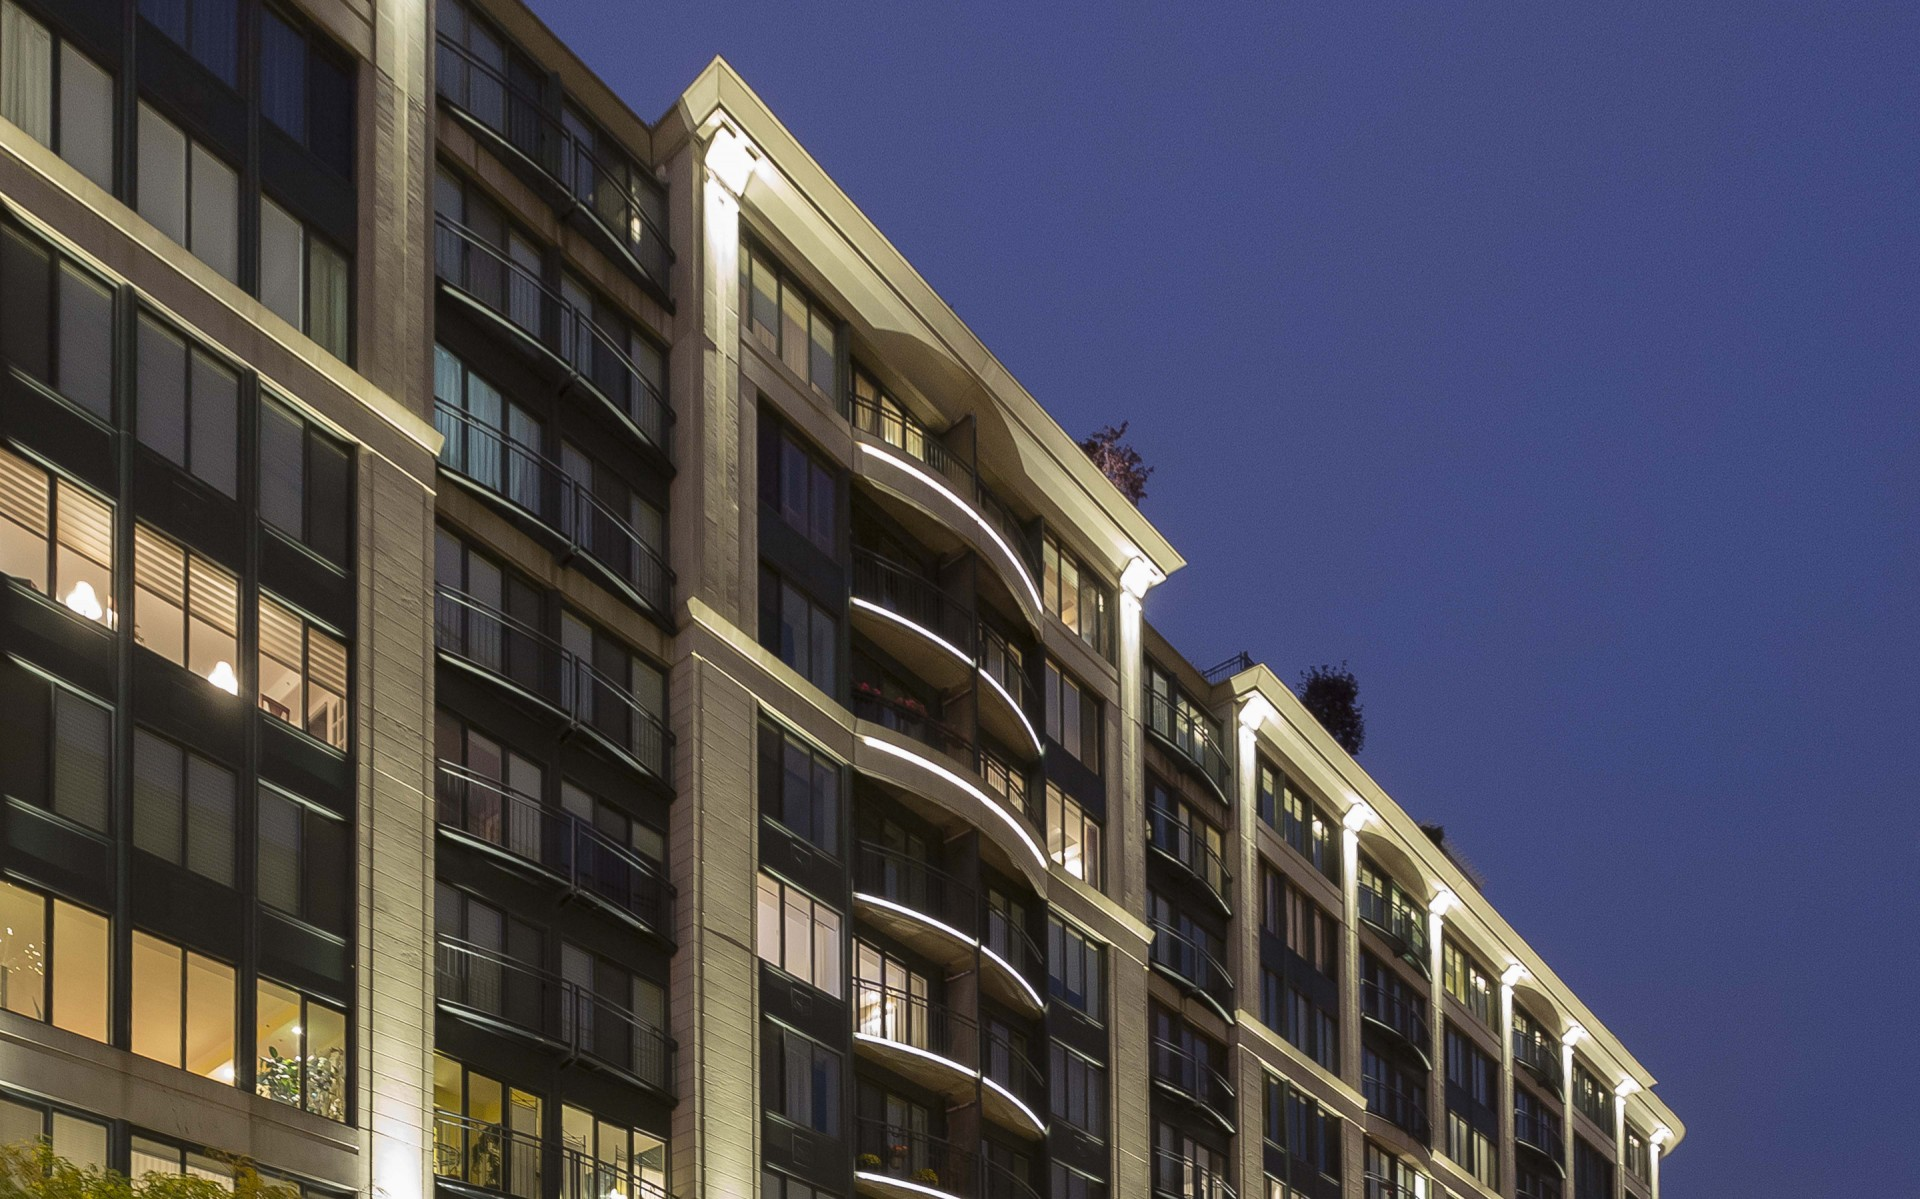 The Lumenfacade luminaires used to graze the cornices were matched to the warmth of the pilaster luminaires. – Ombrages